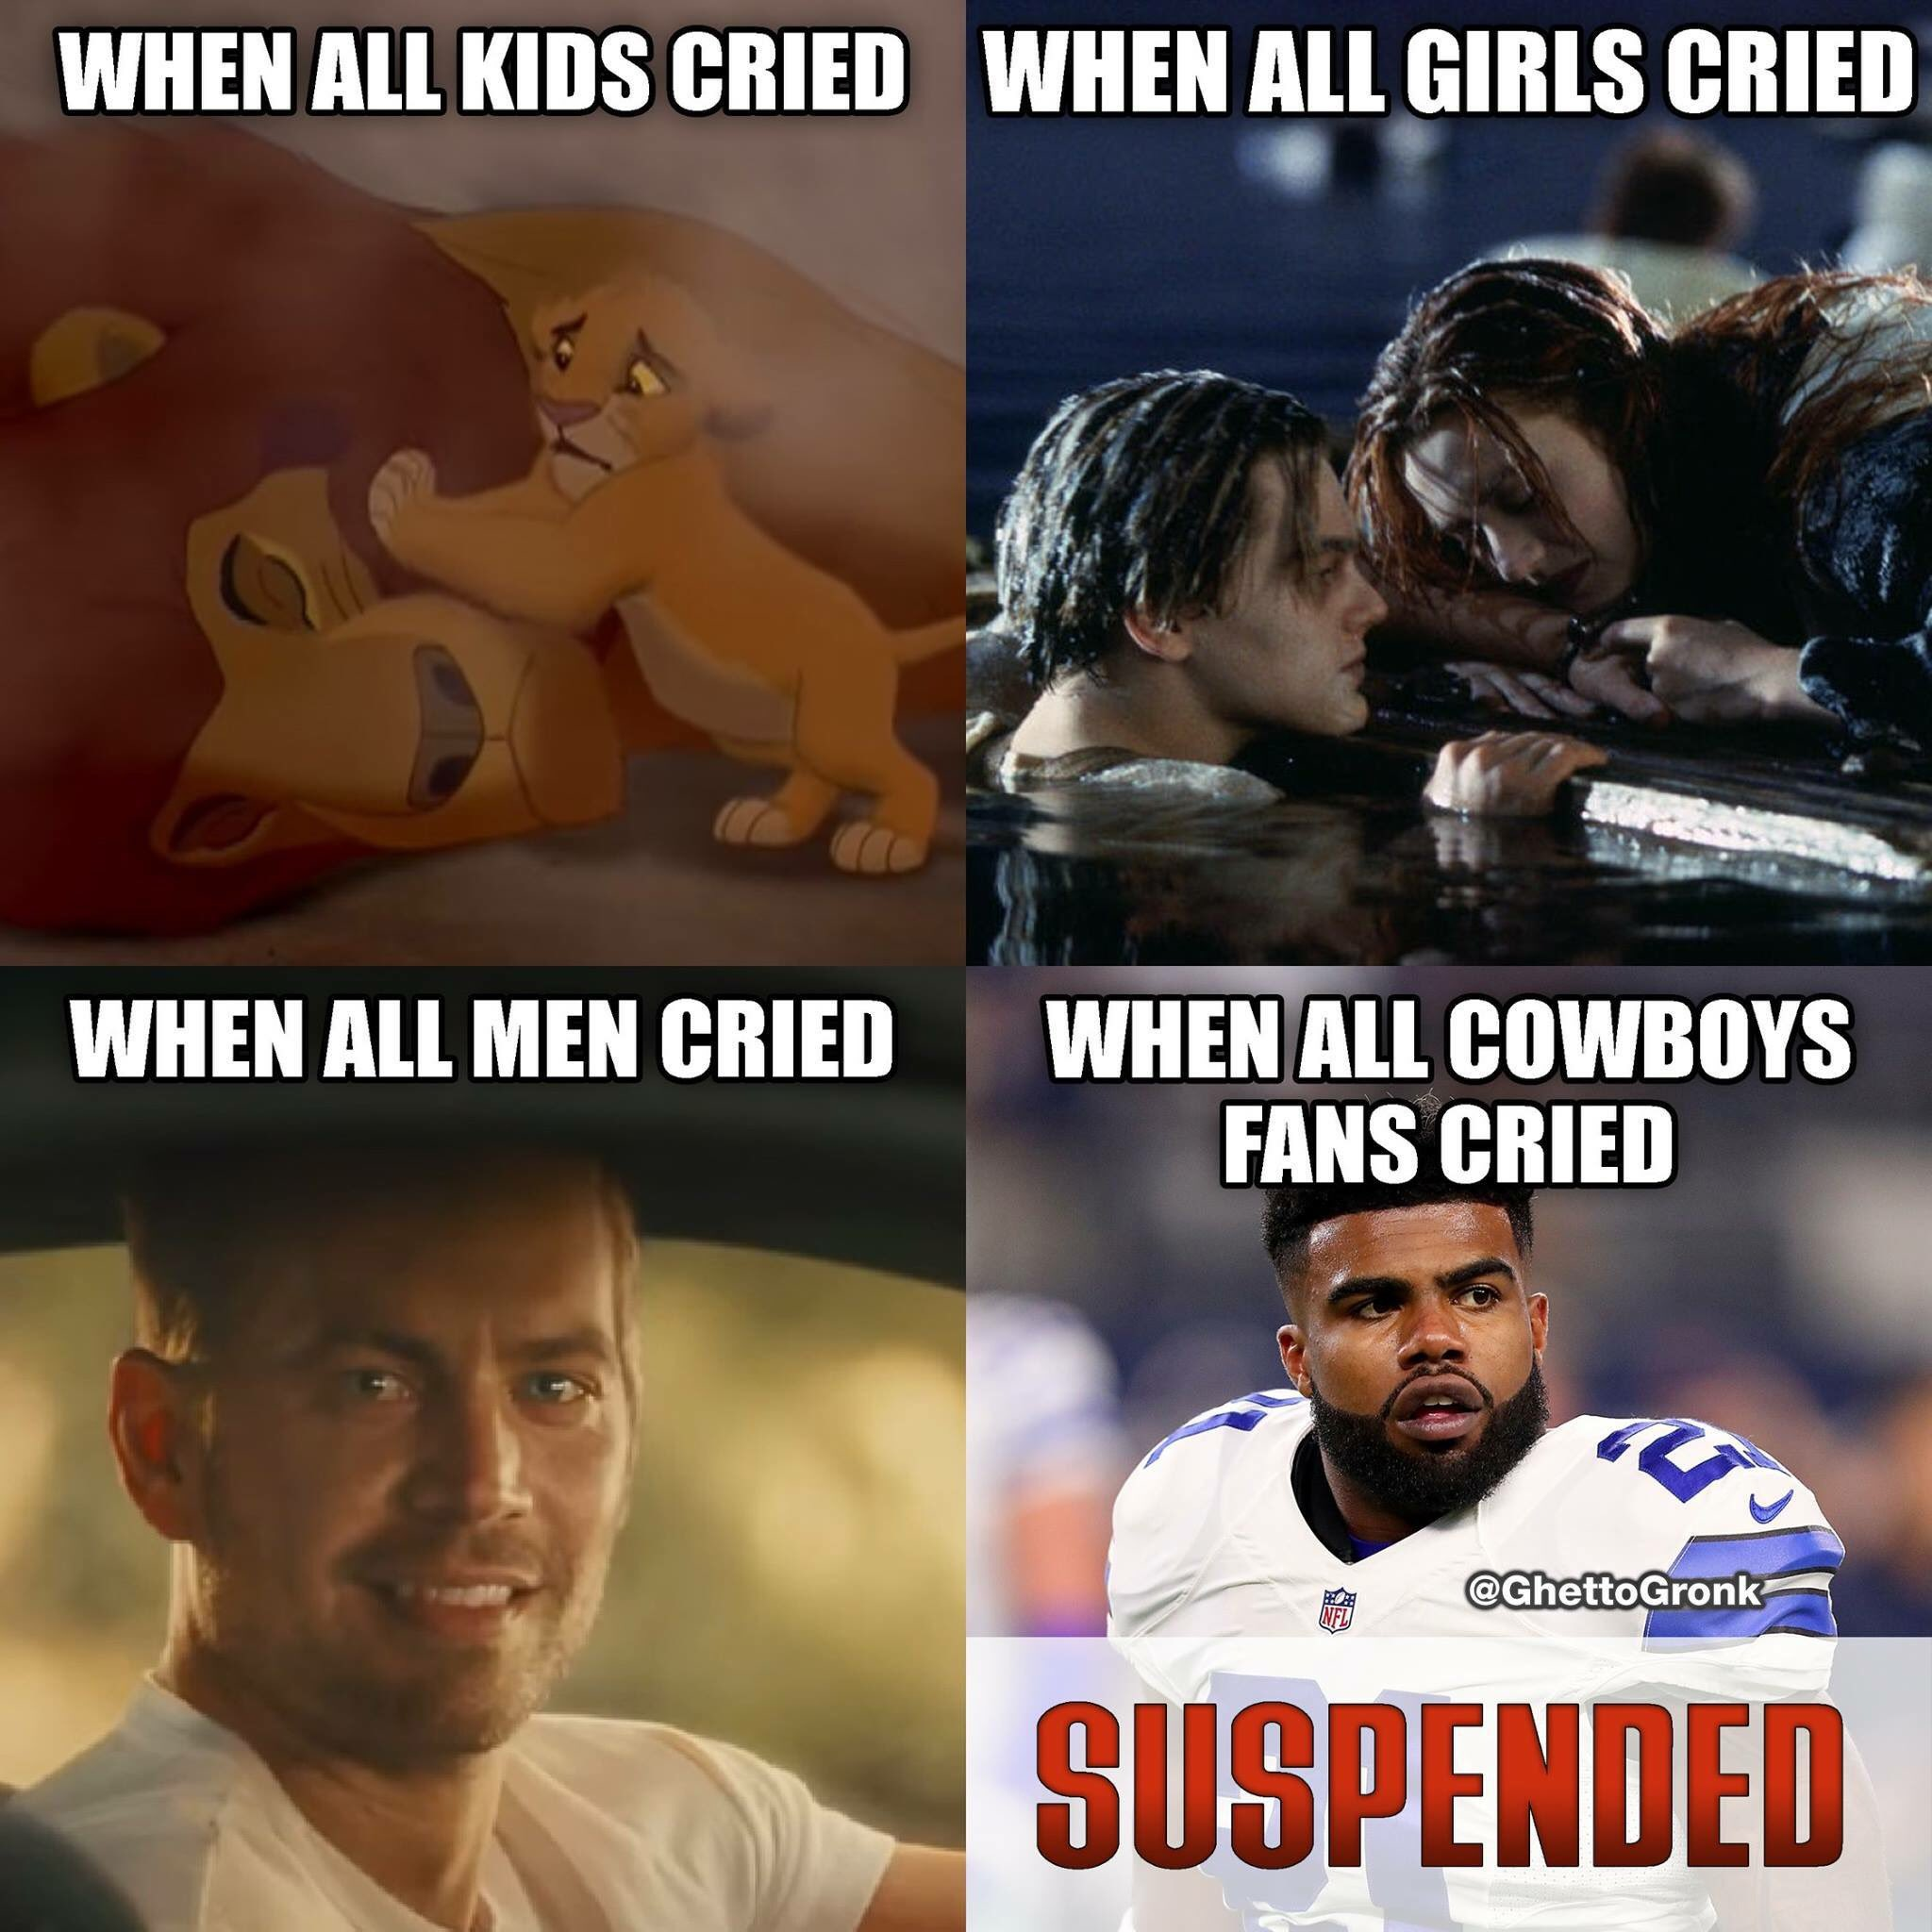 nfl memes dallas cowboys meme 5 nfl memes dallas cowboys meme 5 nfl apparel nfl team shirts